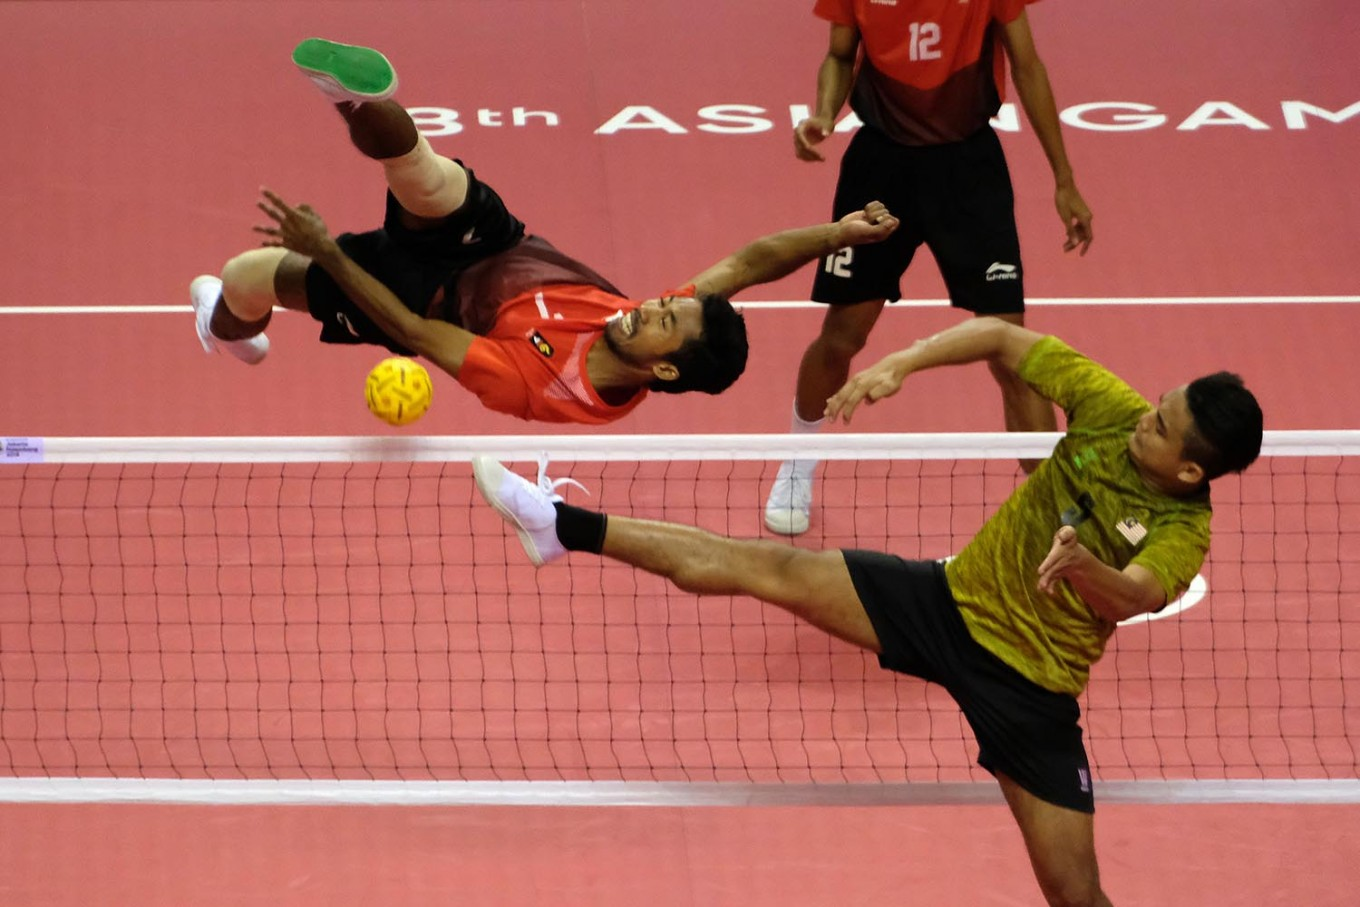 RI's men sepak takraw team wins bronze, first medal from Palembang